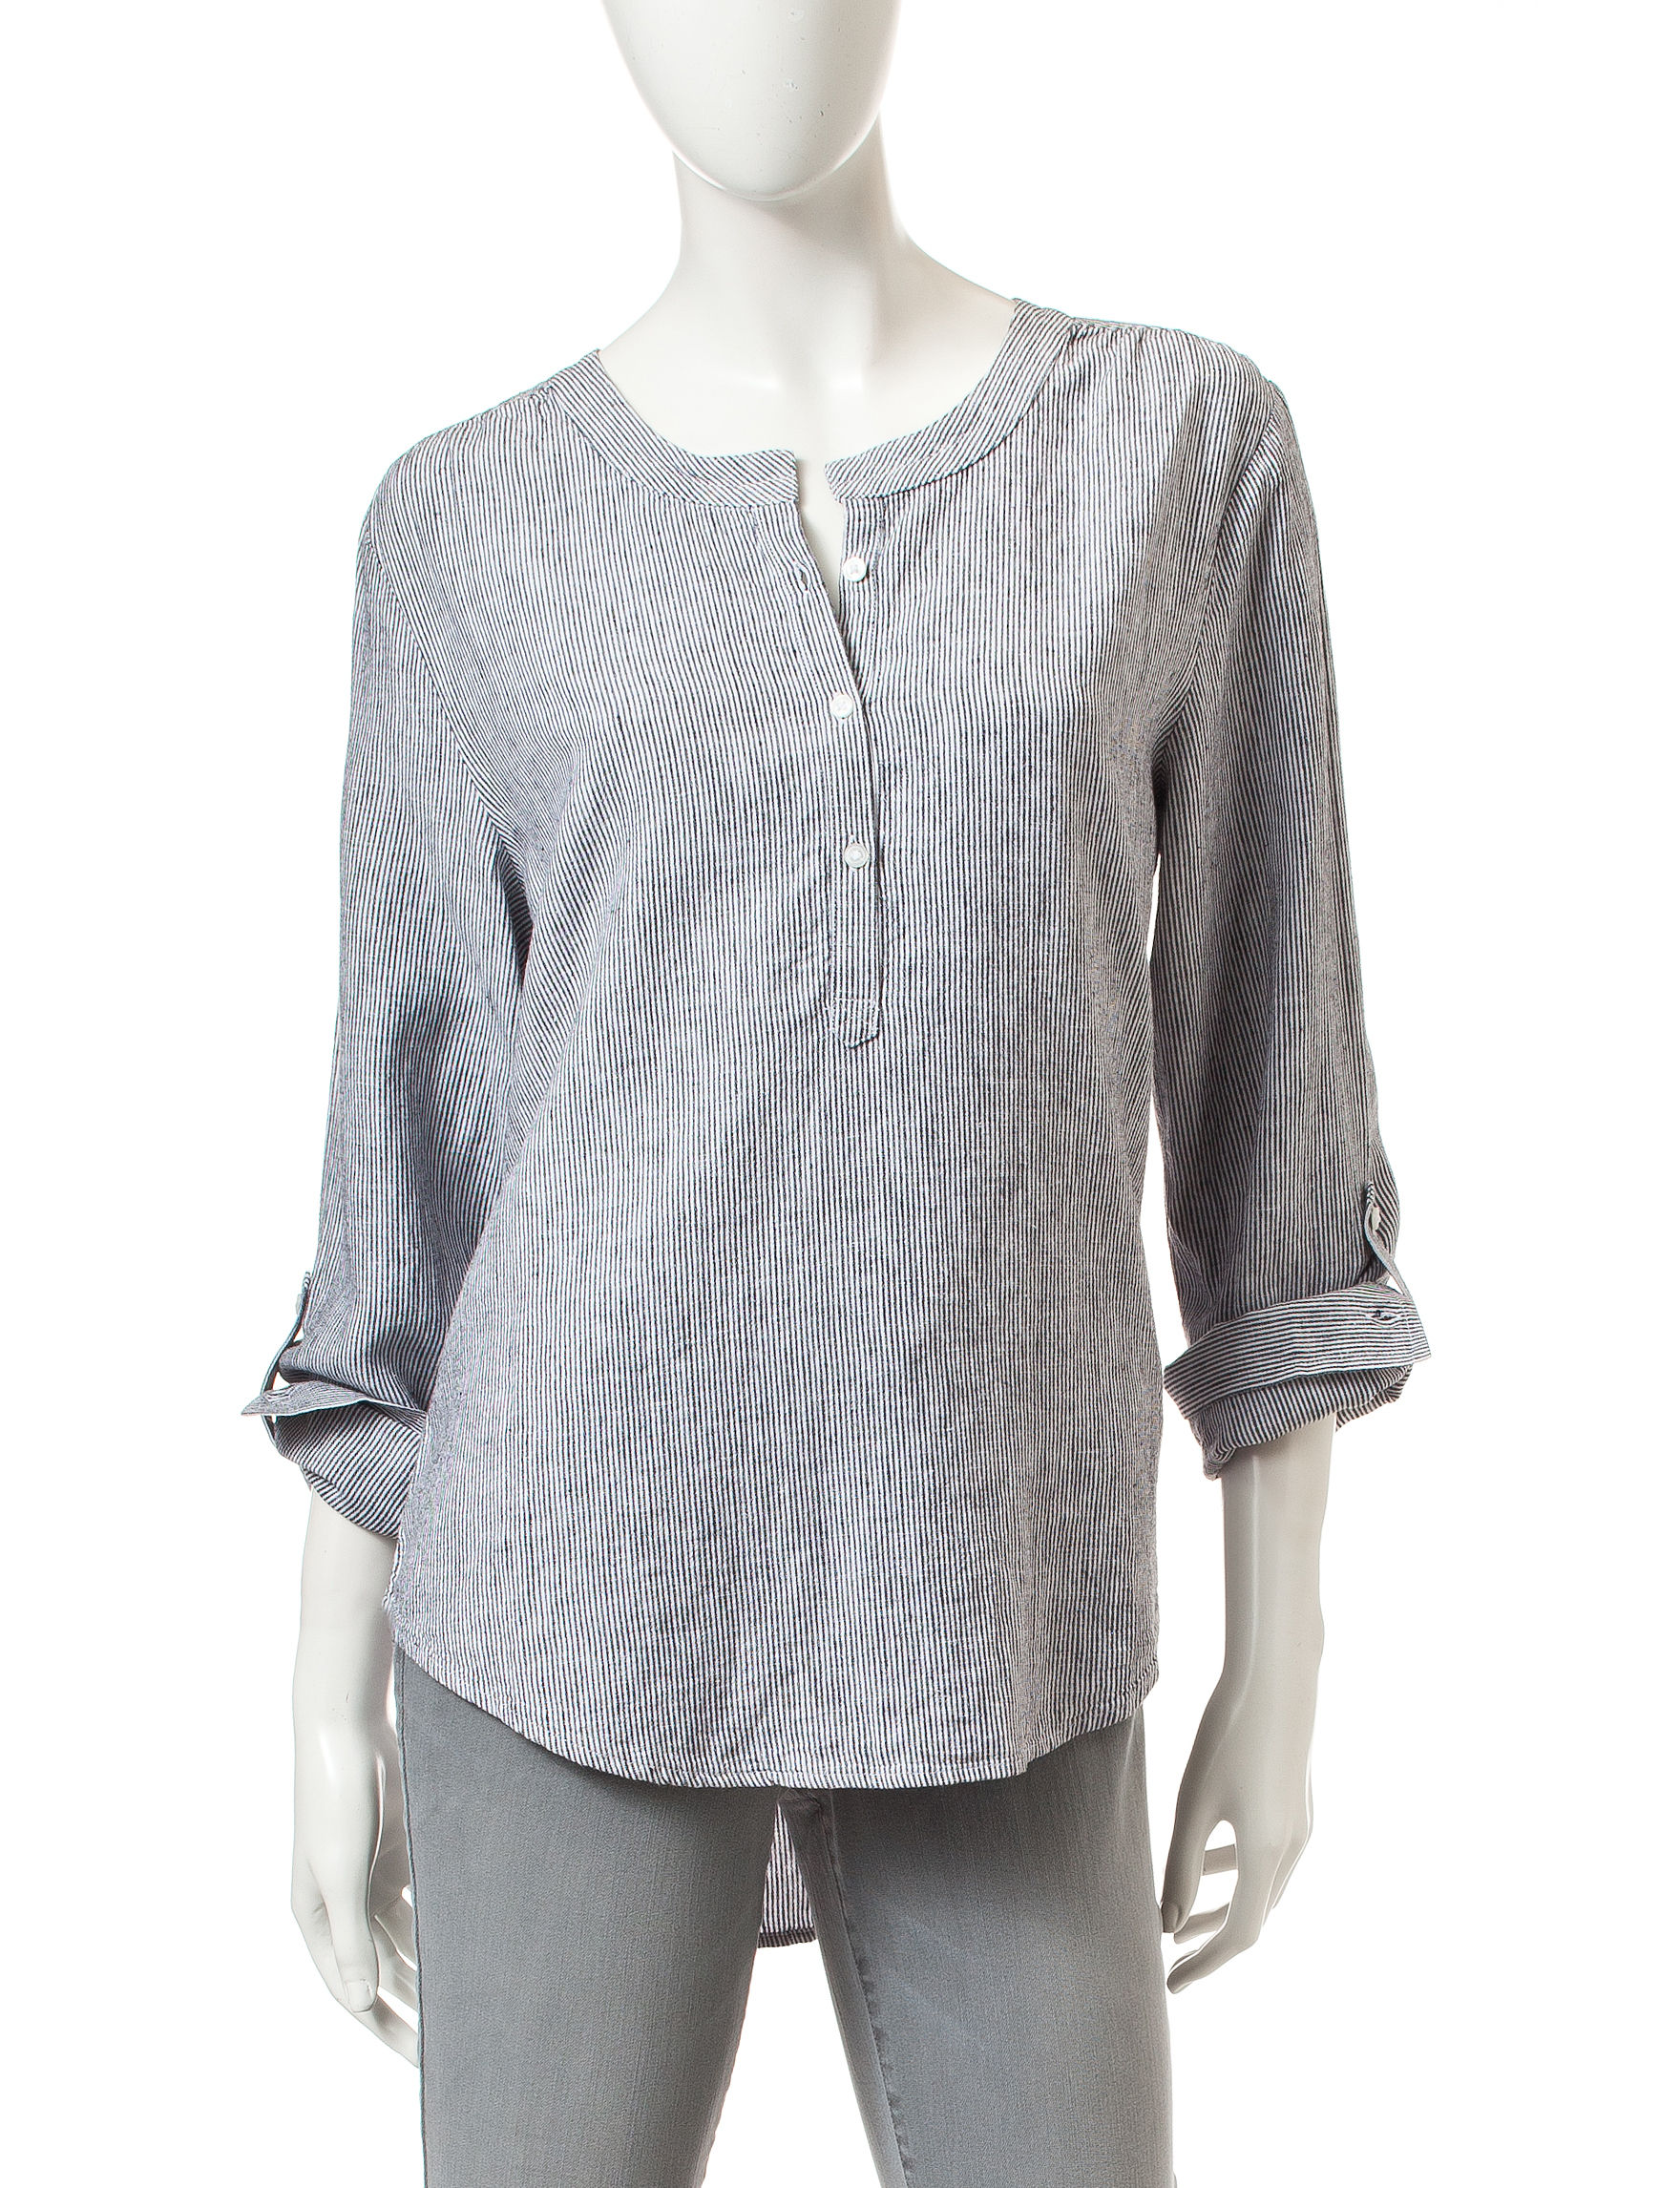 Nine West Jeans Grey Shirts & Blouses